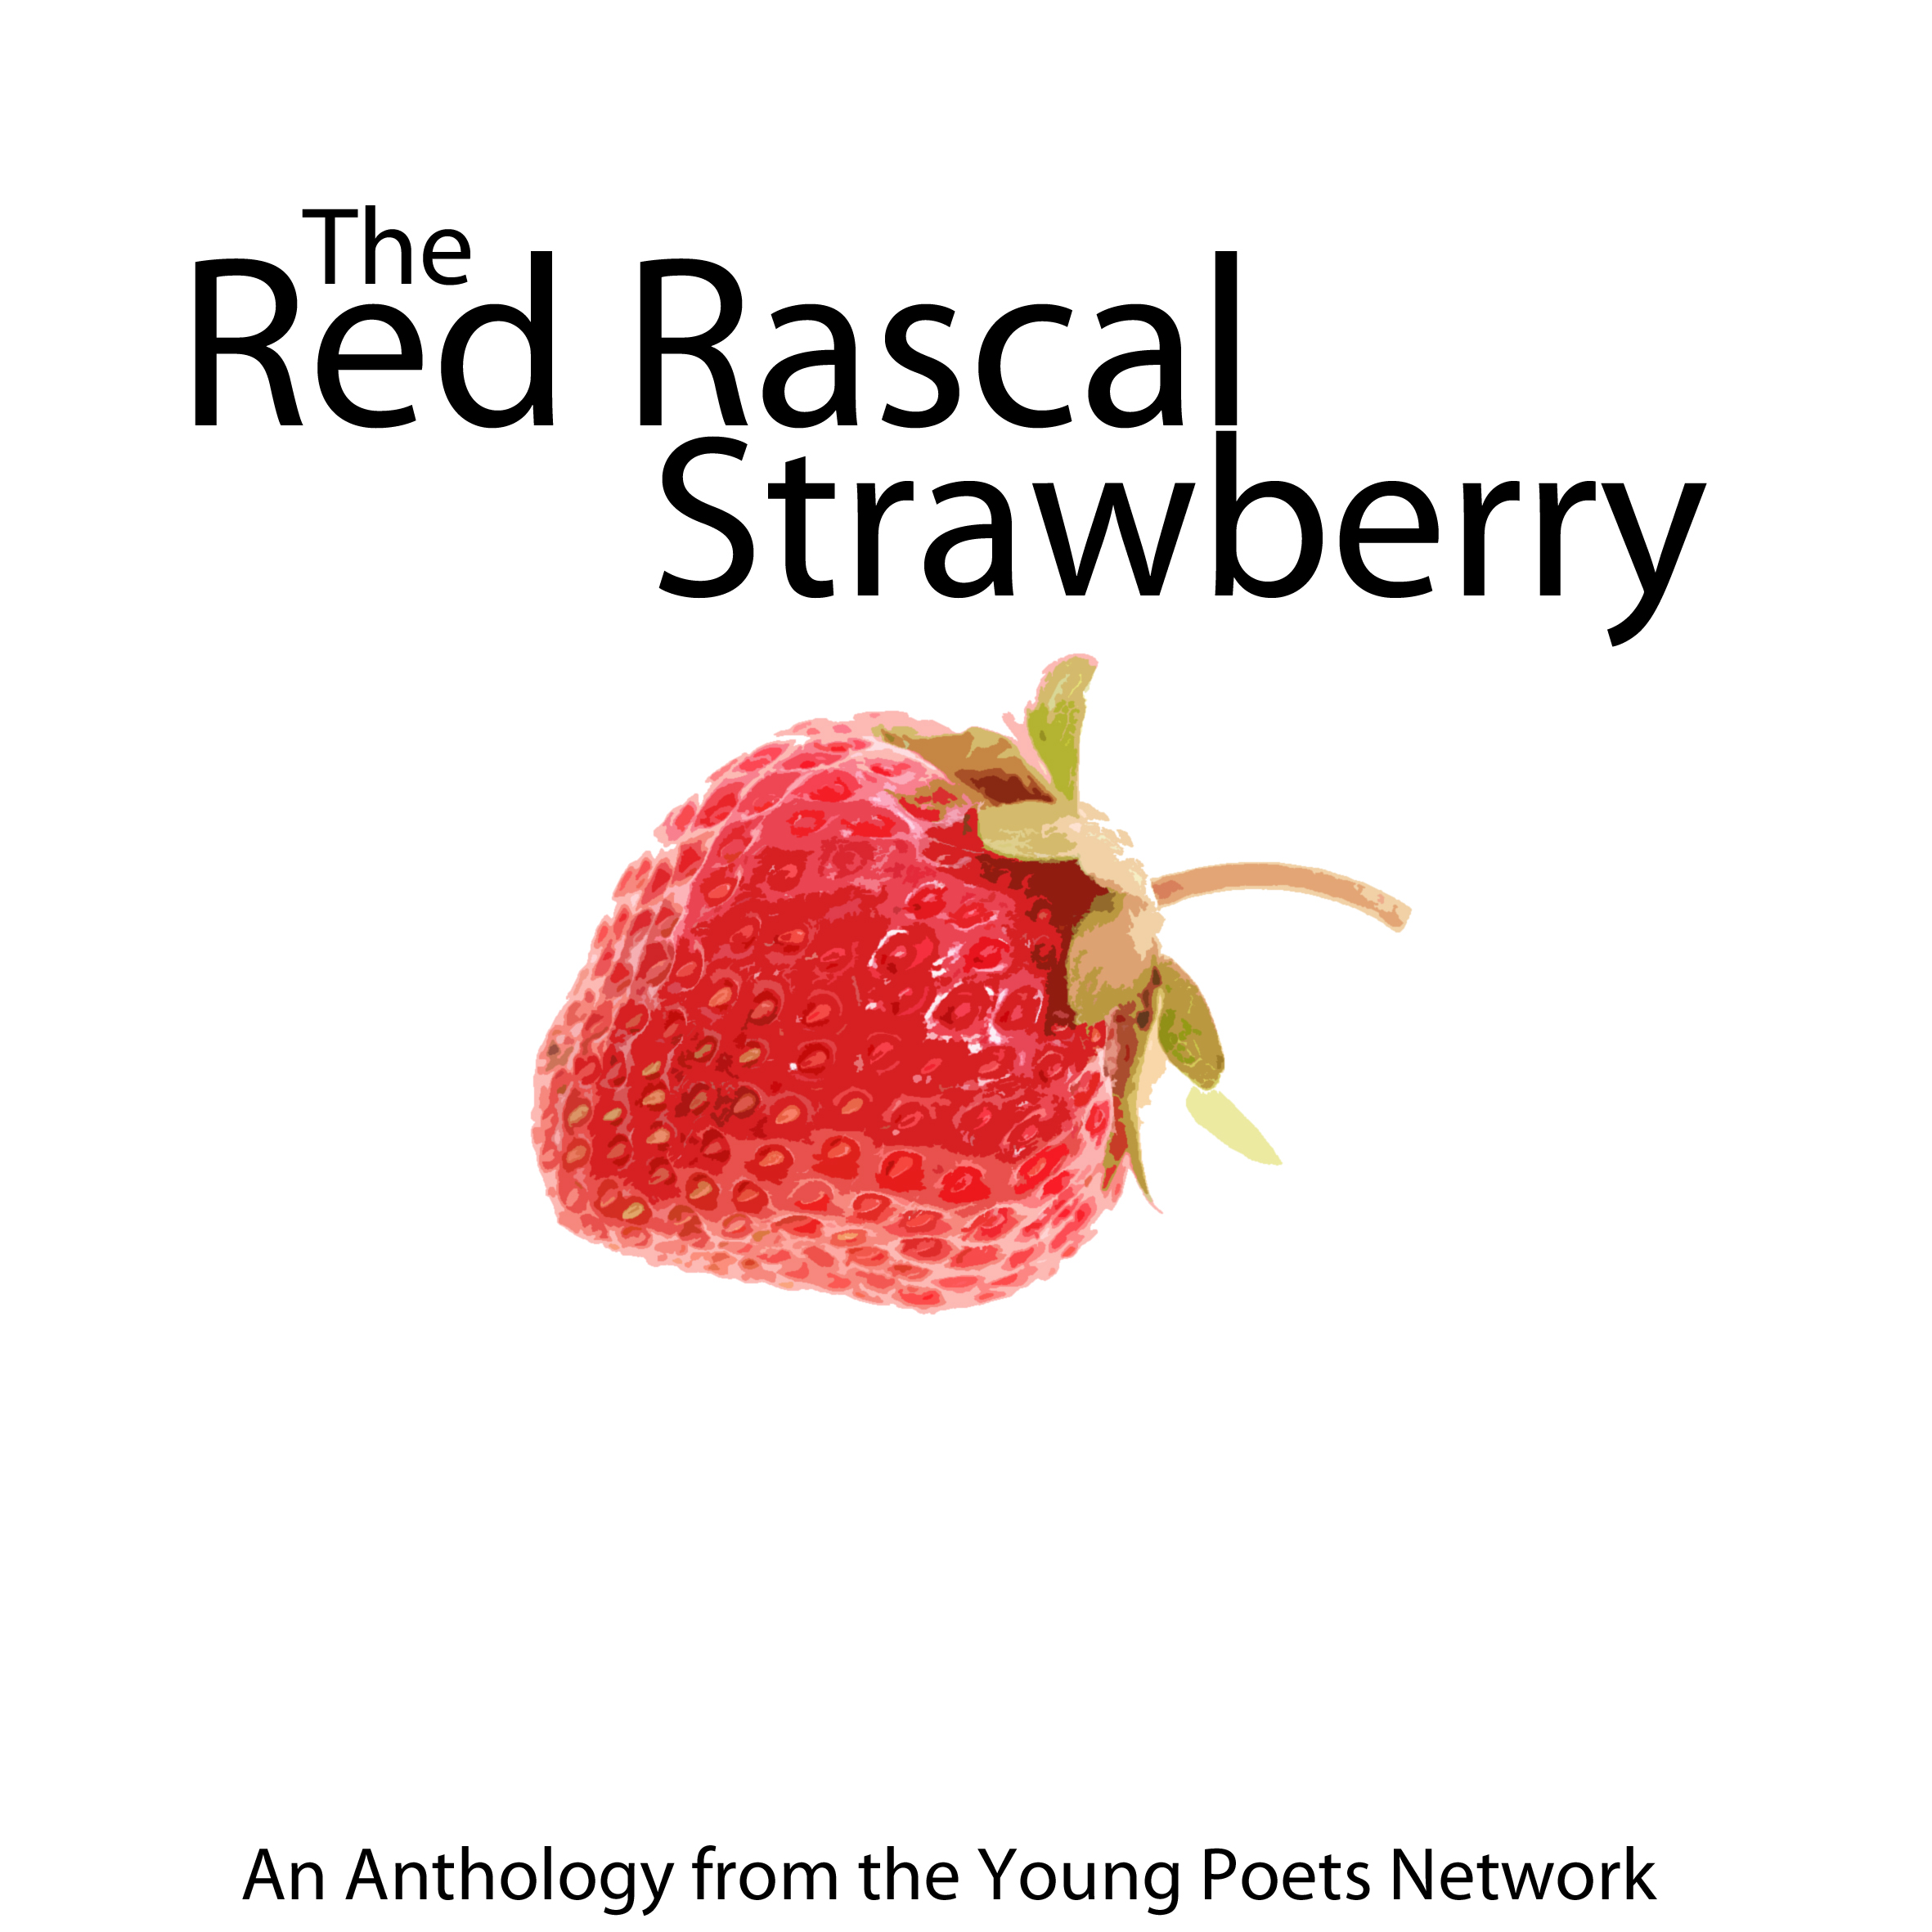 The Red Rascal Strawberry